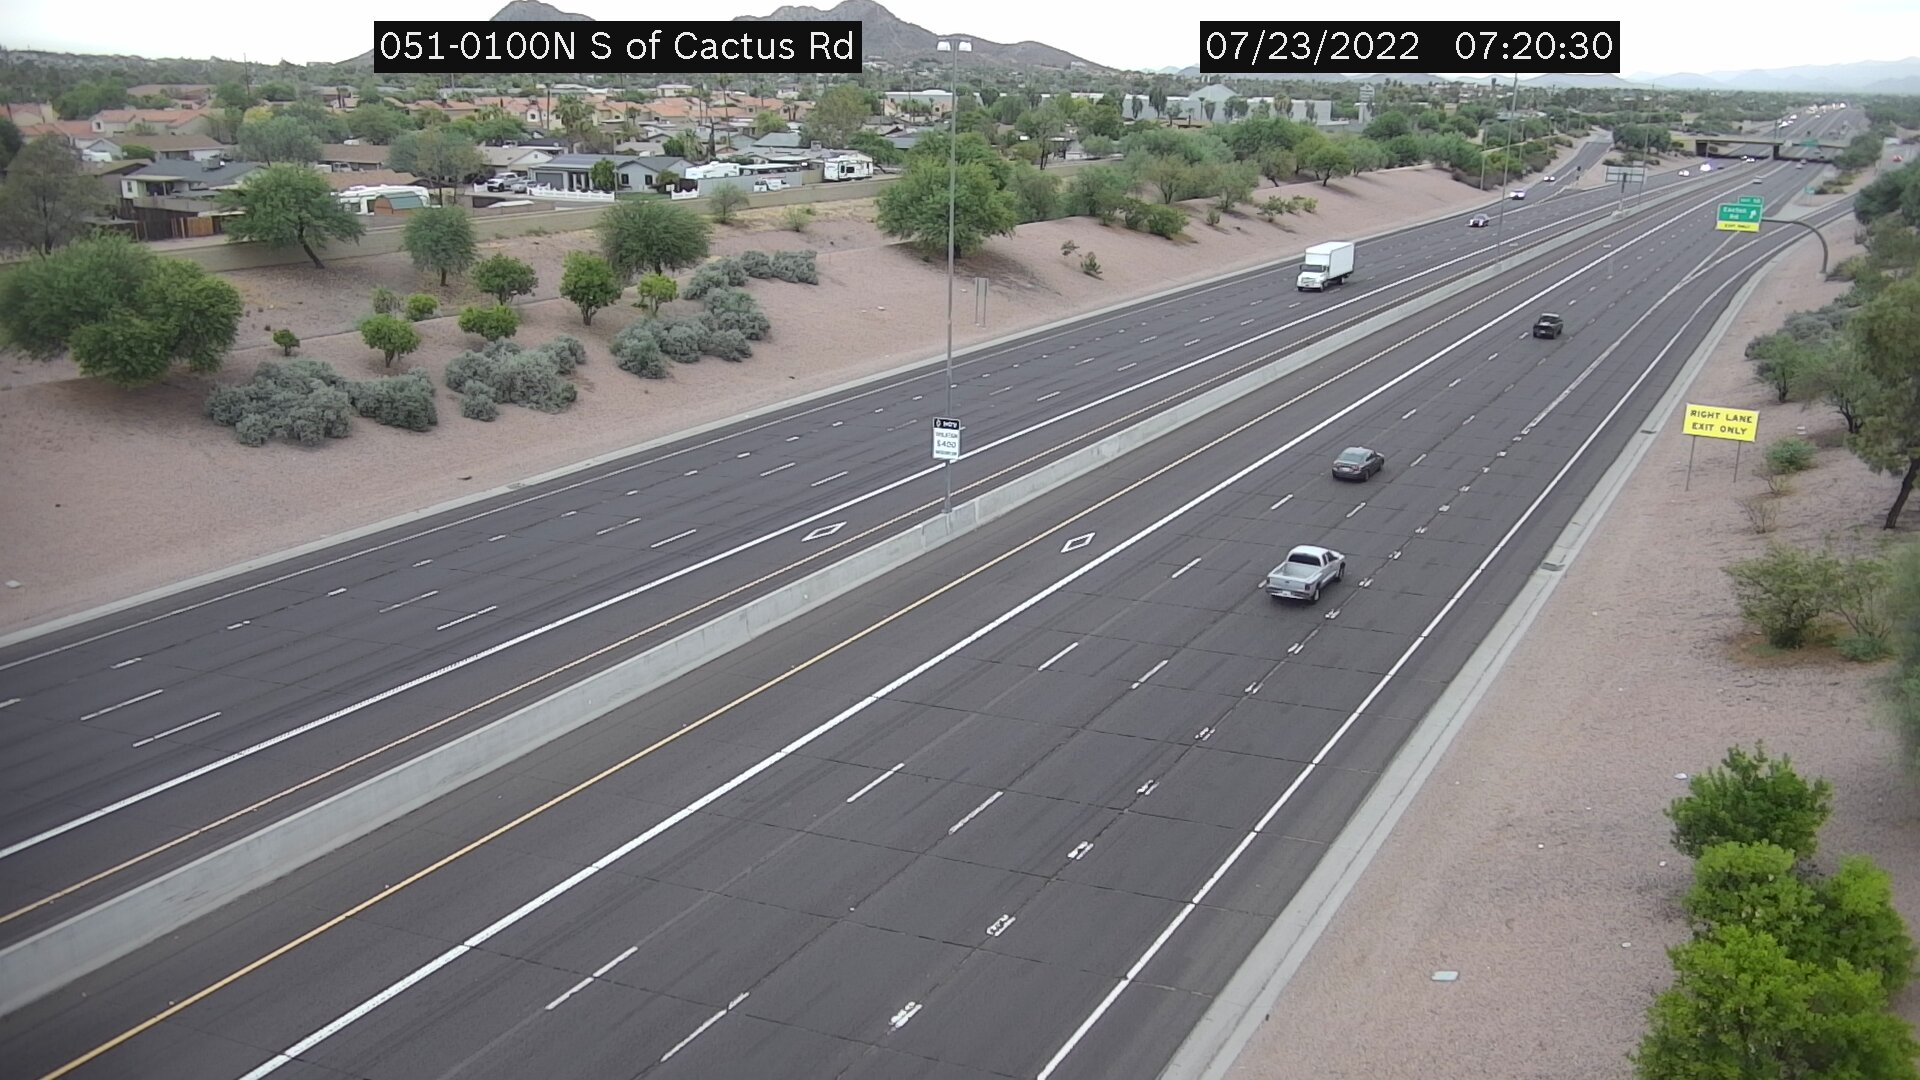 SR51 - South of Cactus Road